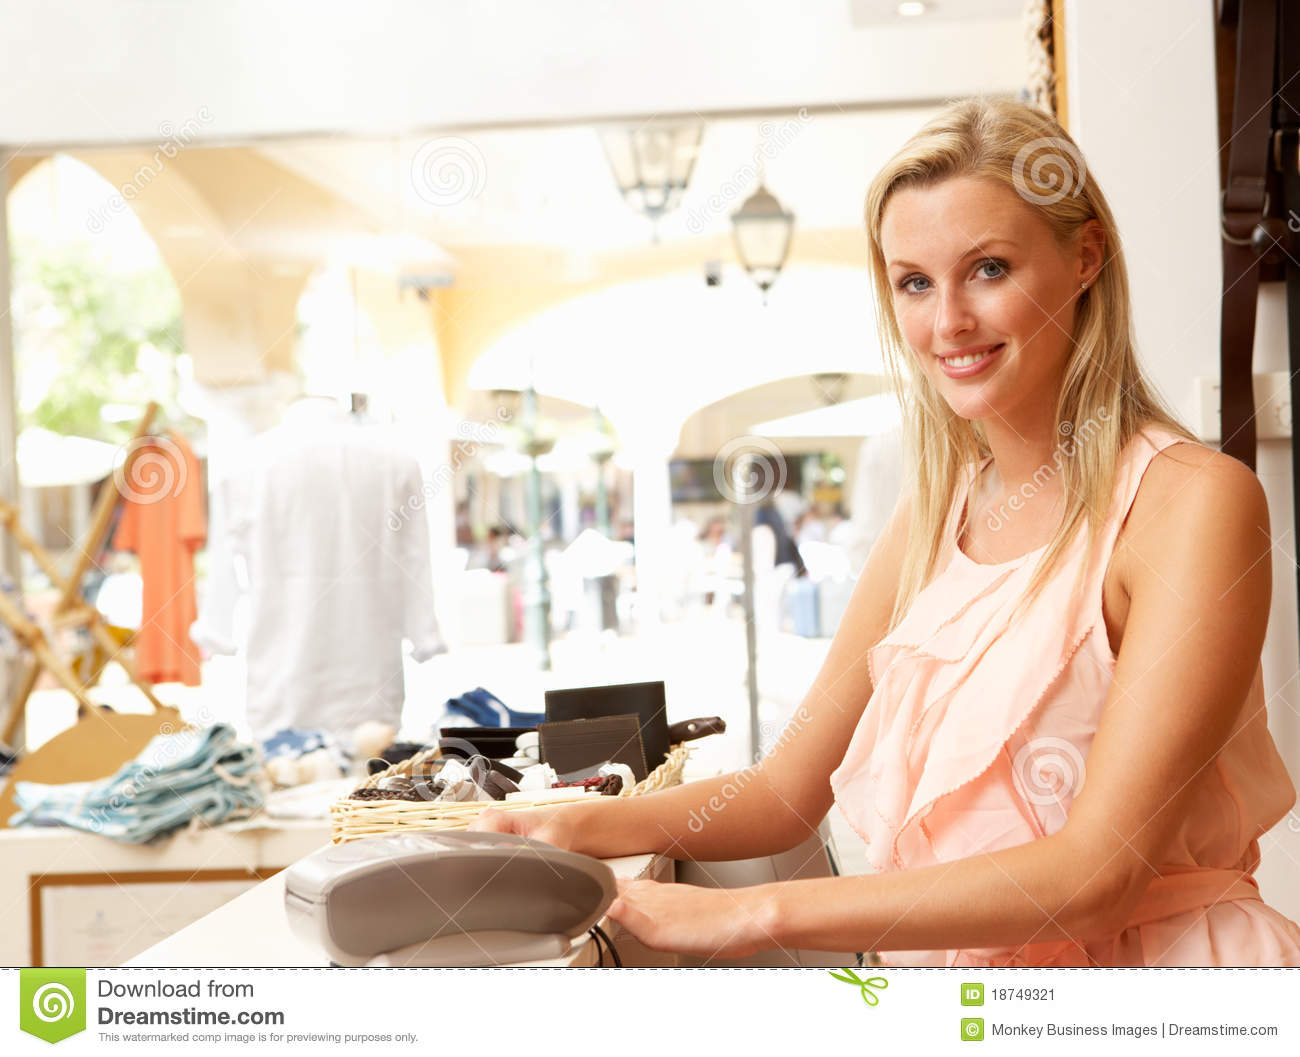 what is the role of a sales assistant